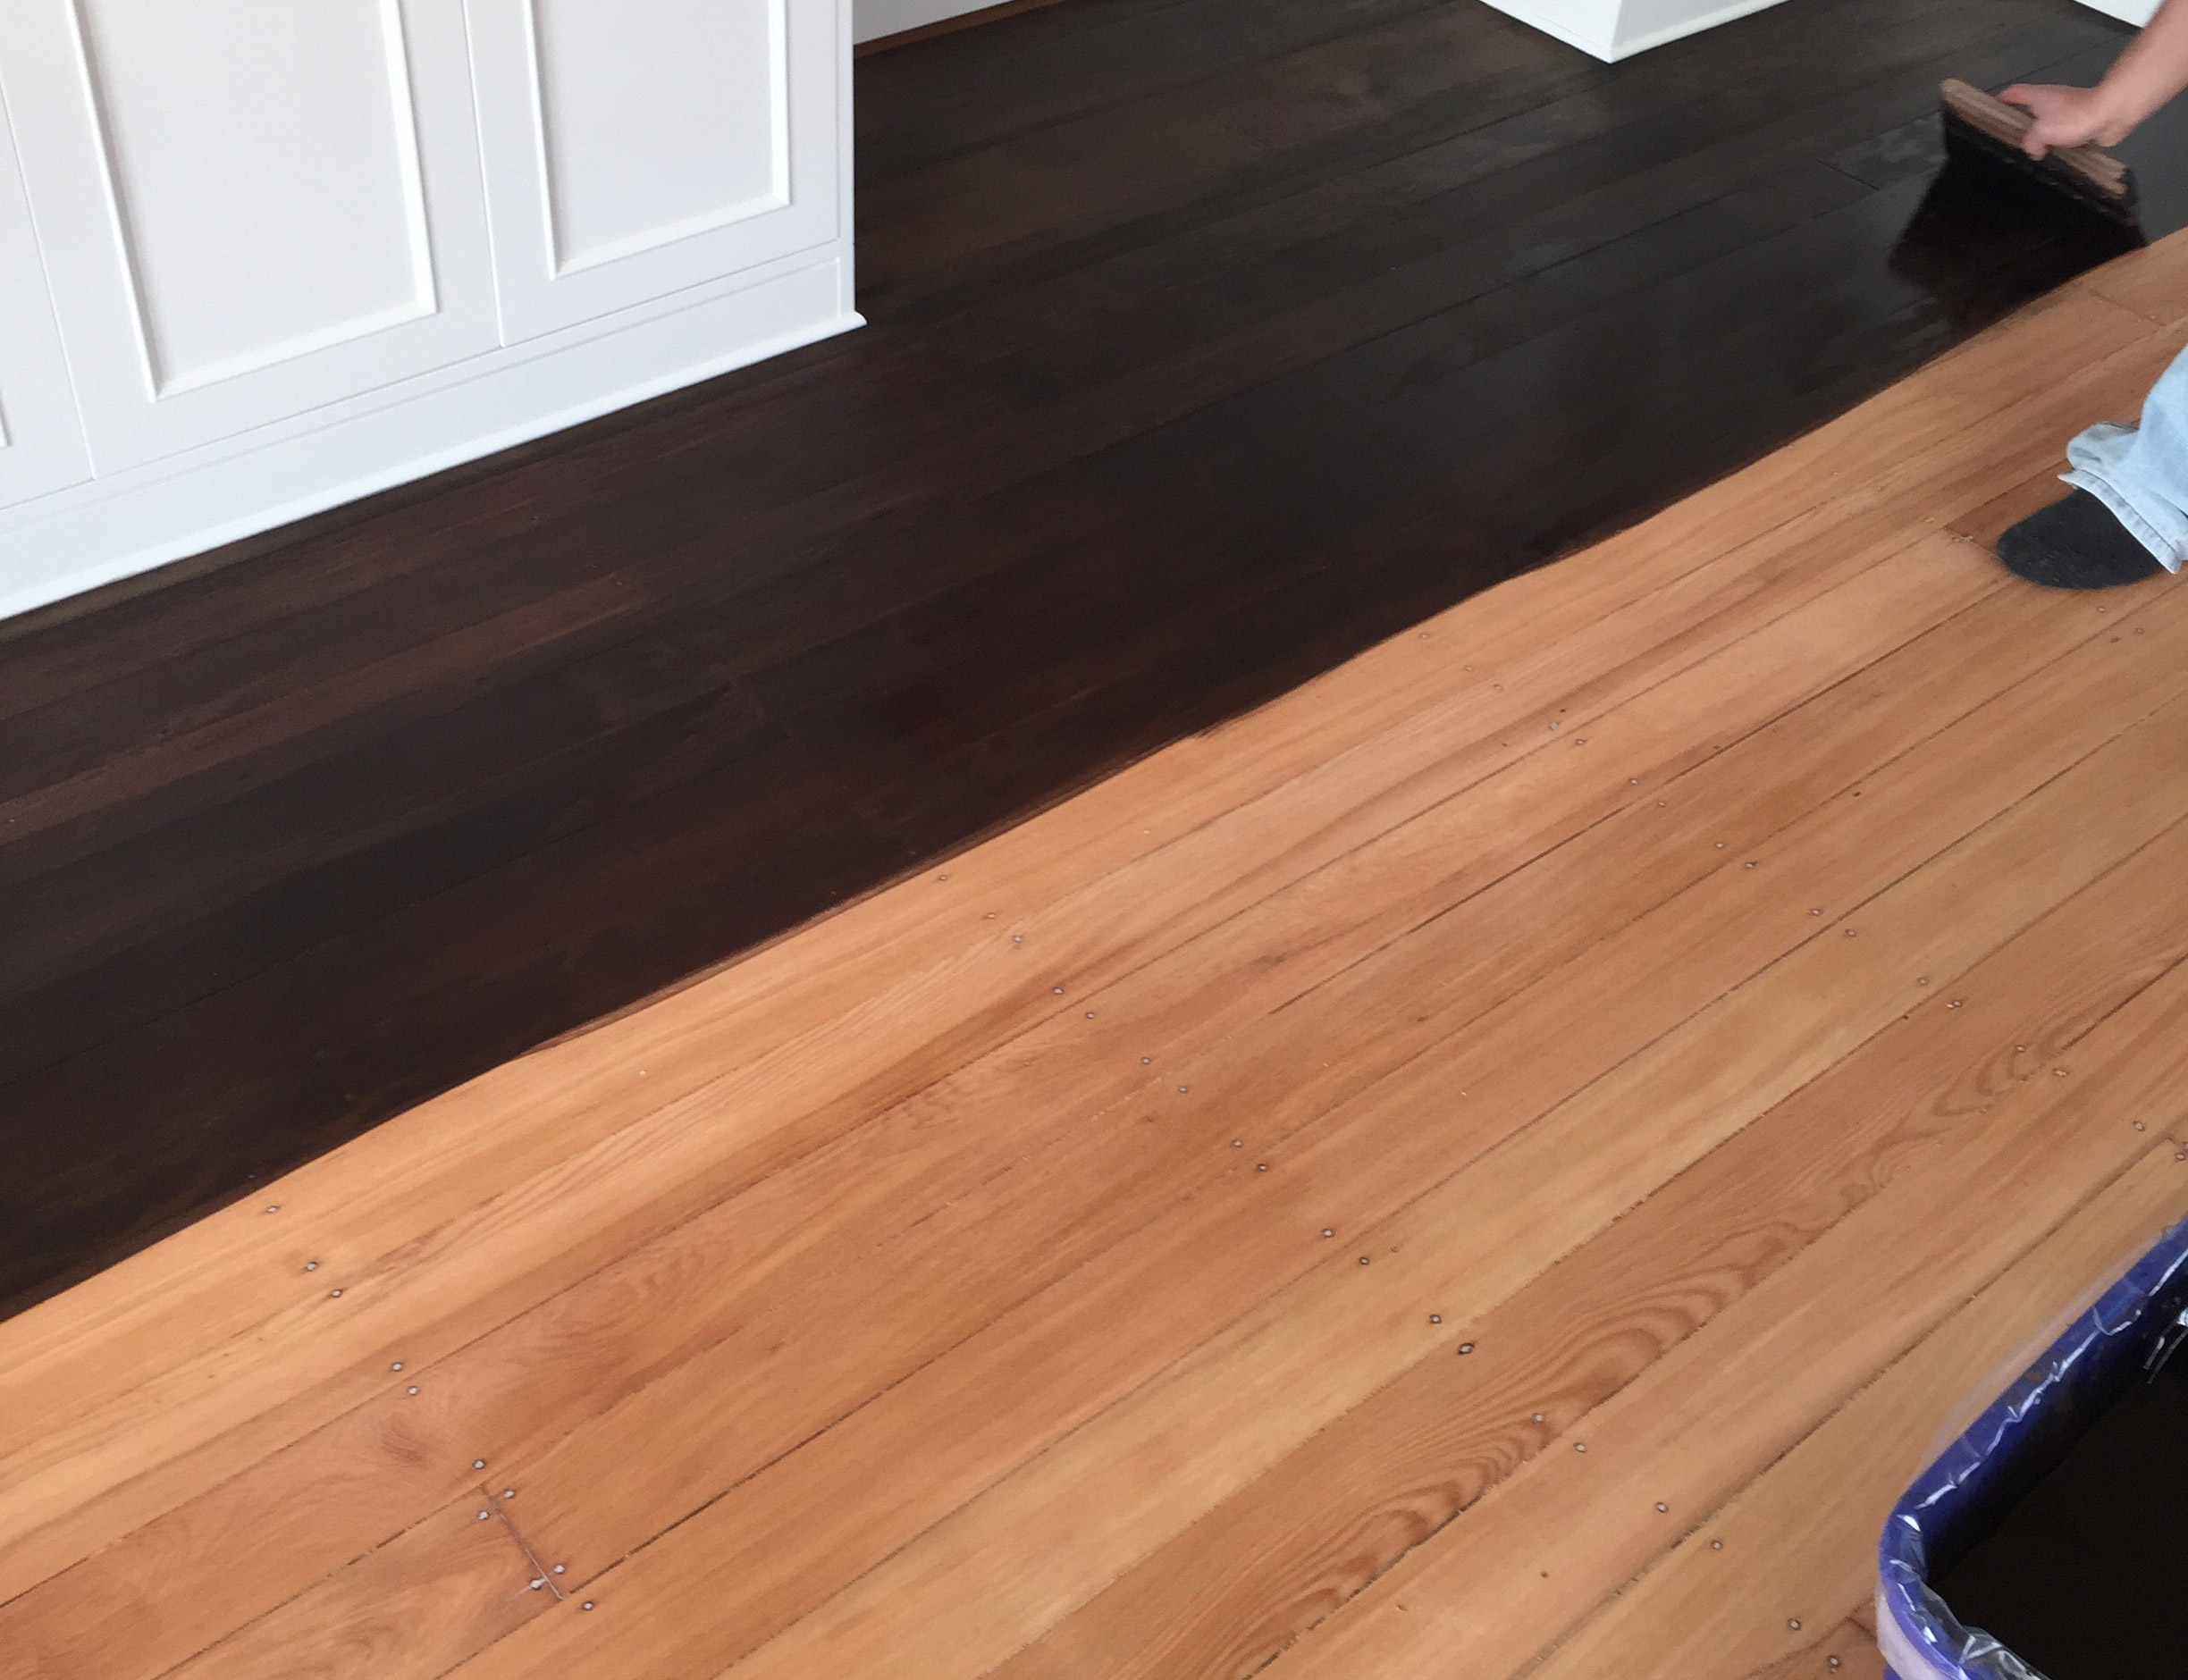 https://coastflooring.co.nz/wp-content/uploads/2020/05/staining_service.jpg